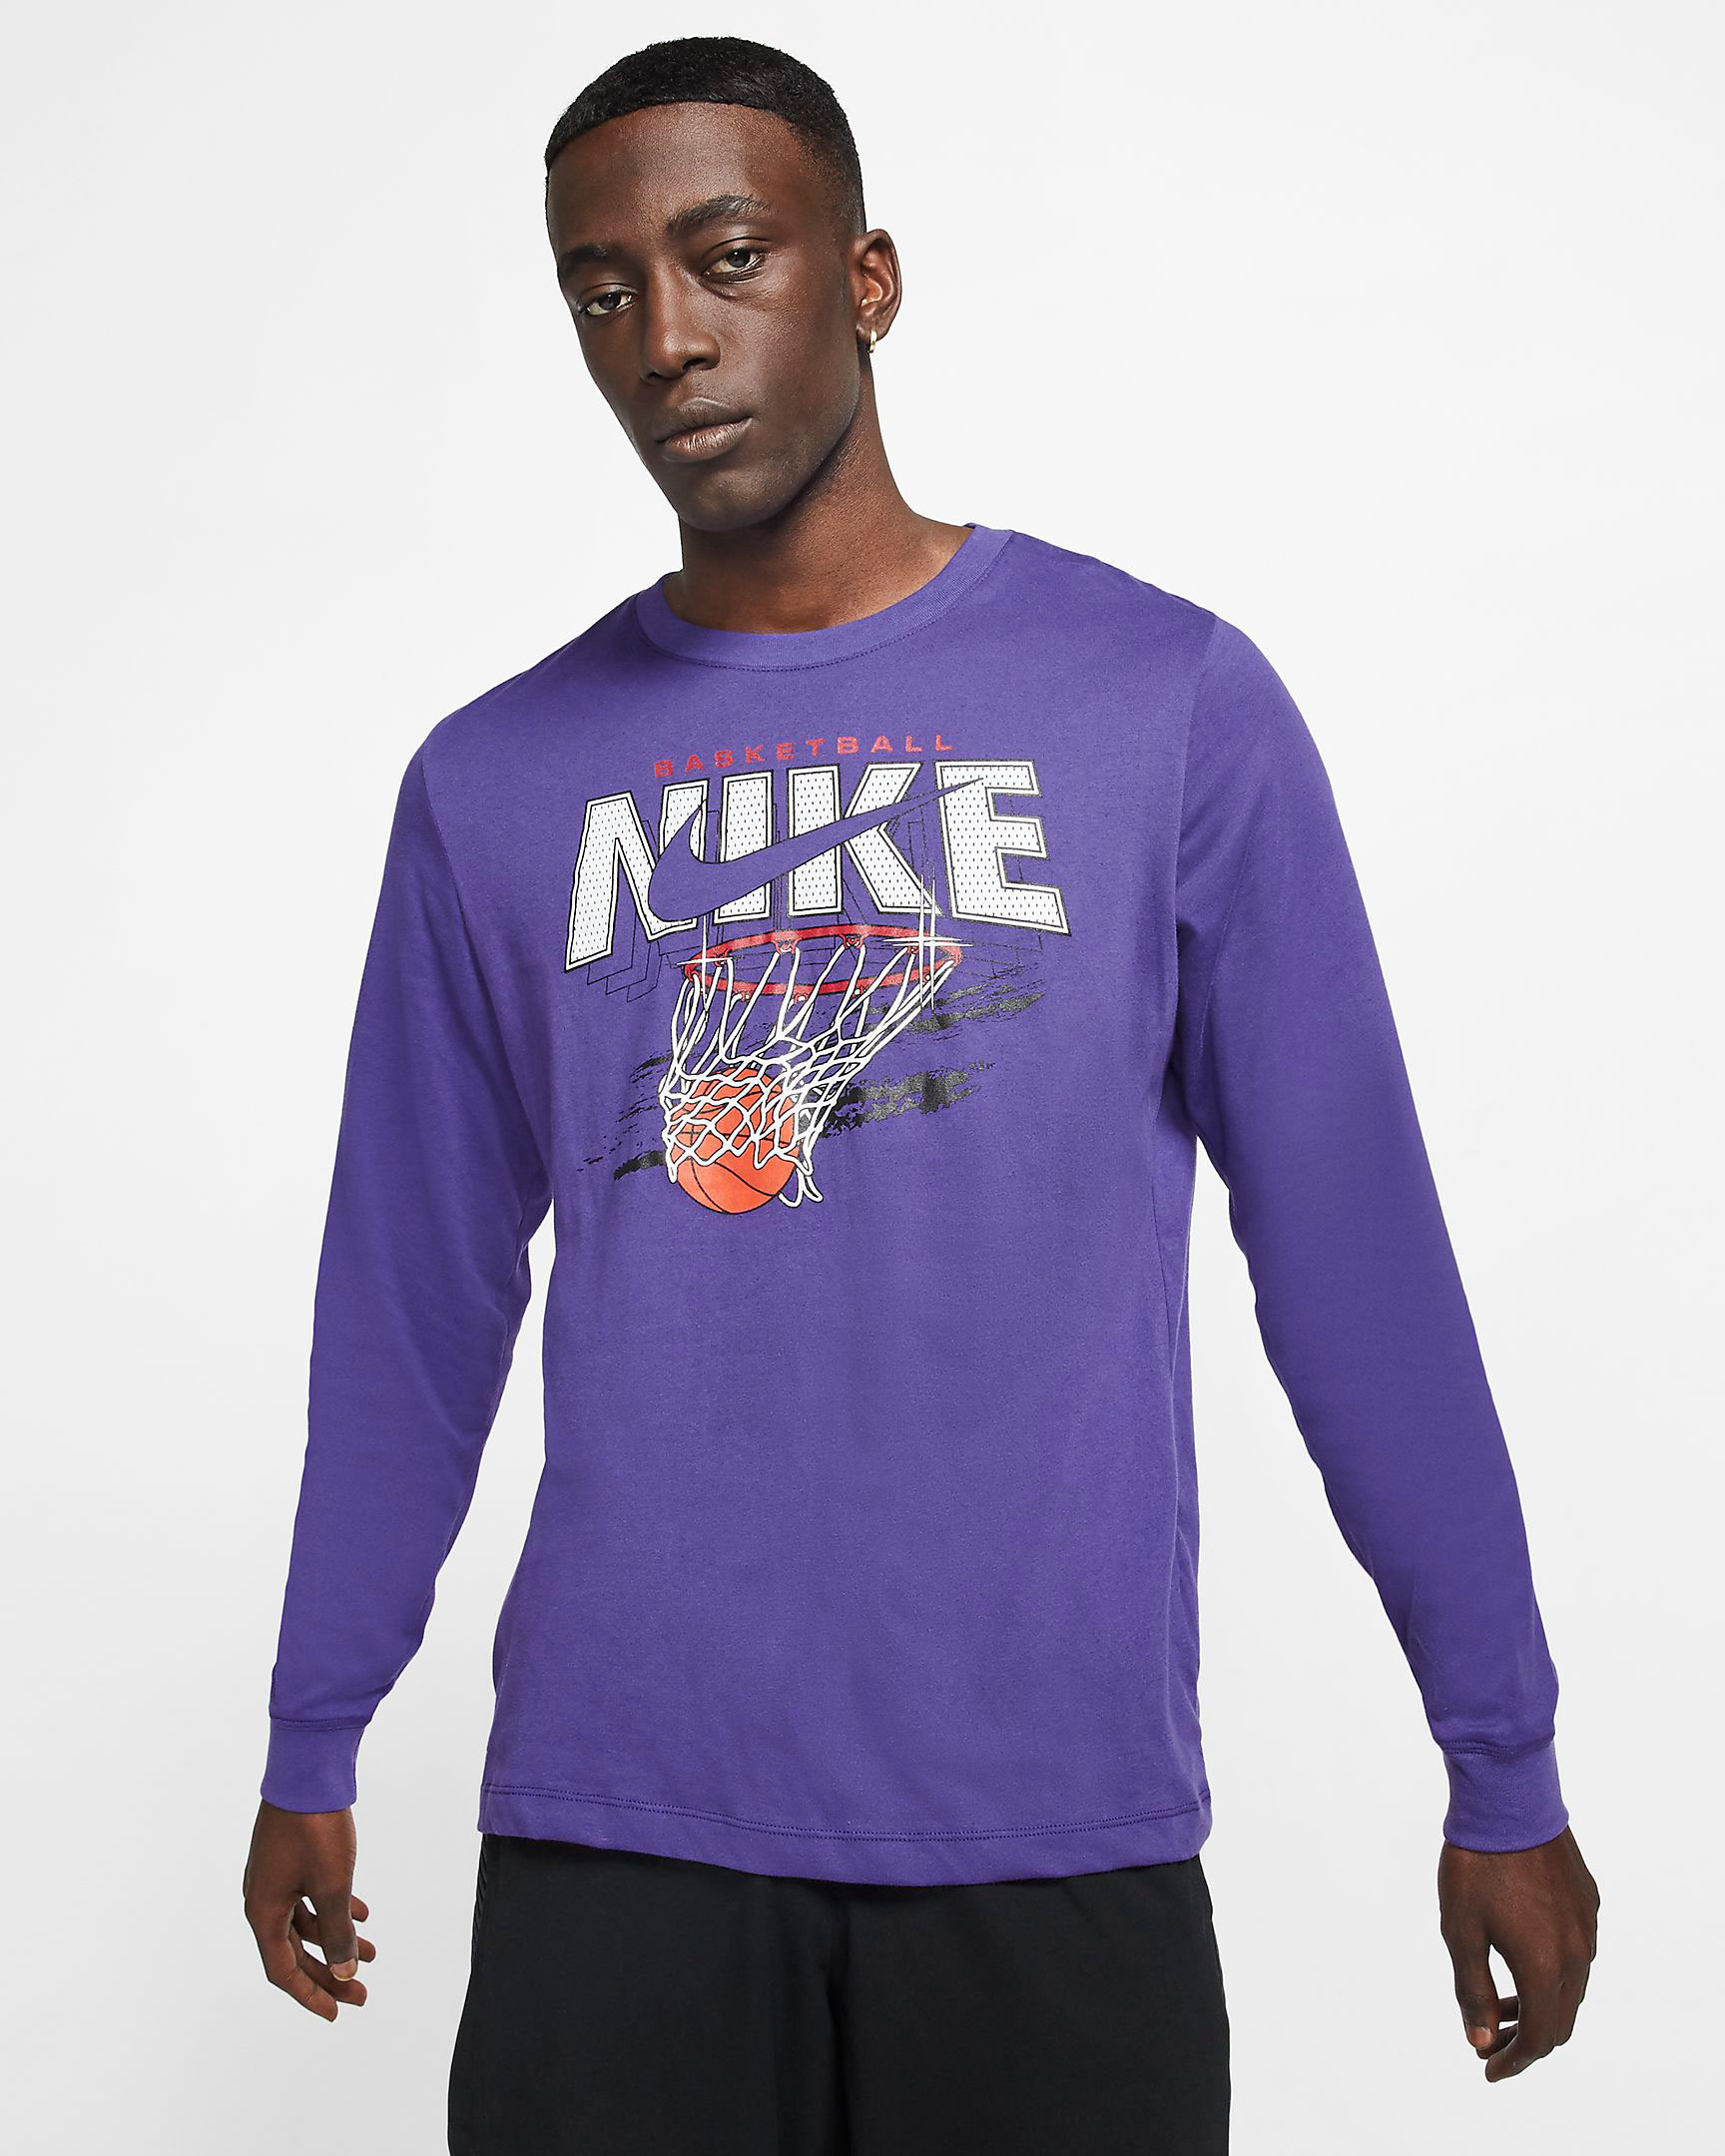 nike-basketball-grand-purple-shirt